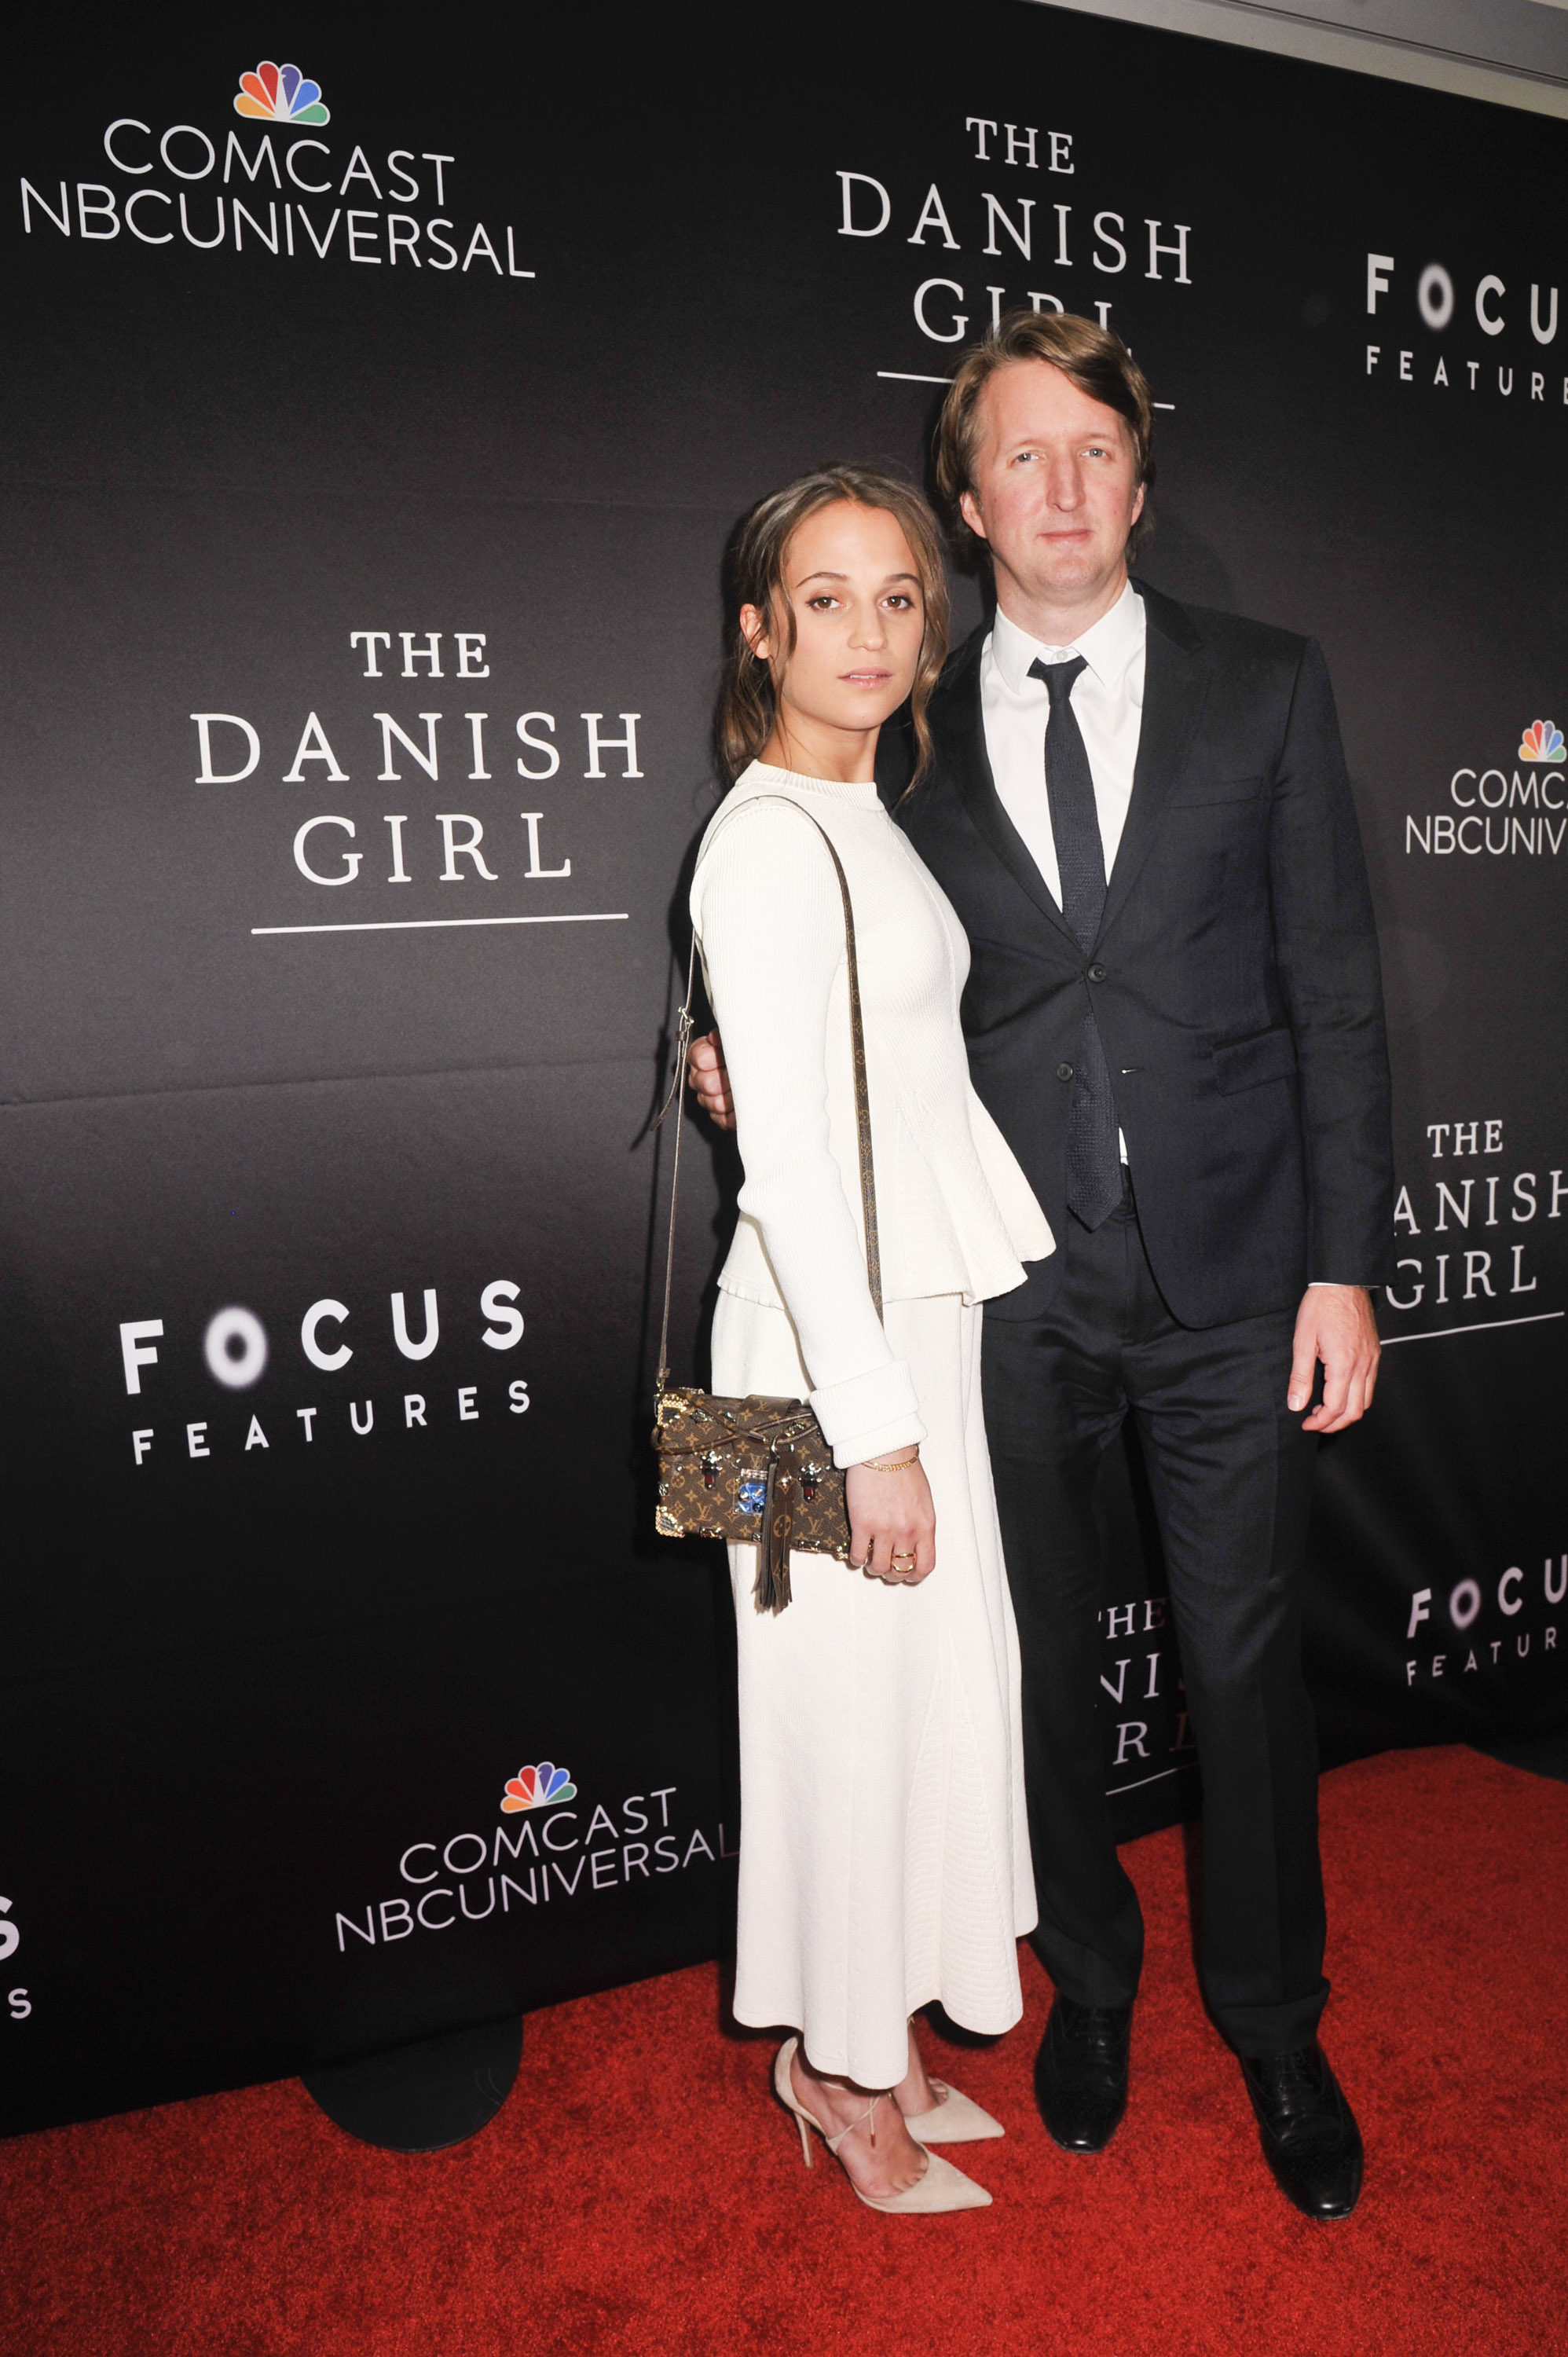 "Alicia Vikander, actress, The Danish Girl; Tom Hooper, director, The Danish Girl, attend the DC premiere of Focus Features' ""THE DANISH GIRL"" at the United States Navy Memorial in Washington DC on November 23, 2015. (Photo by Kris Connor for Focus Features)"